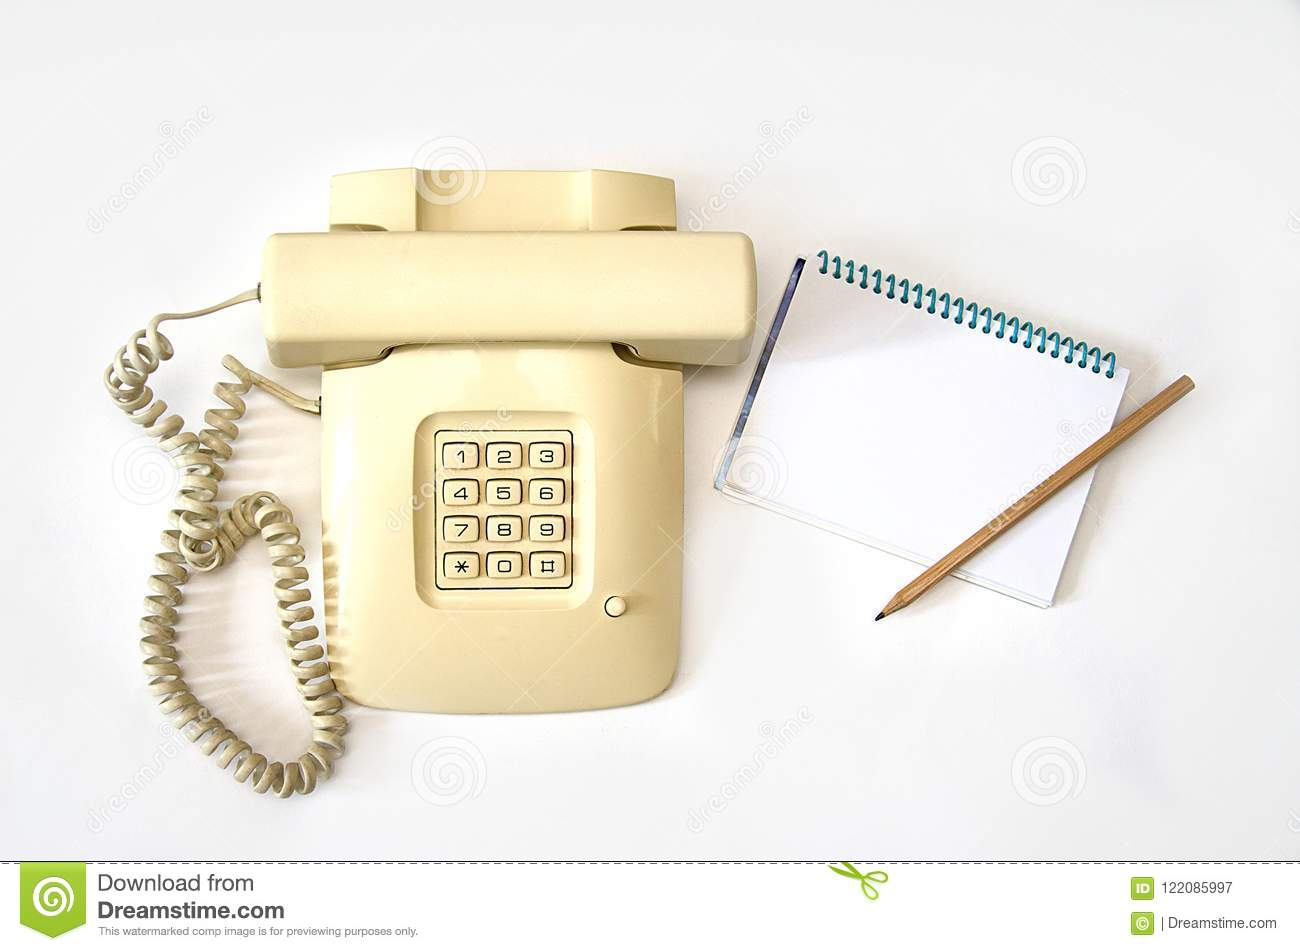 Isolate Beige Old Telephone With Wire Tube Lies On White Background Handset Wiring A Shot Of From An Phone Is In Persons Hand Retro Home Wired